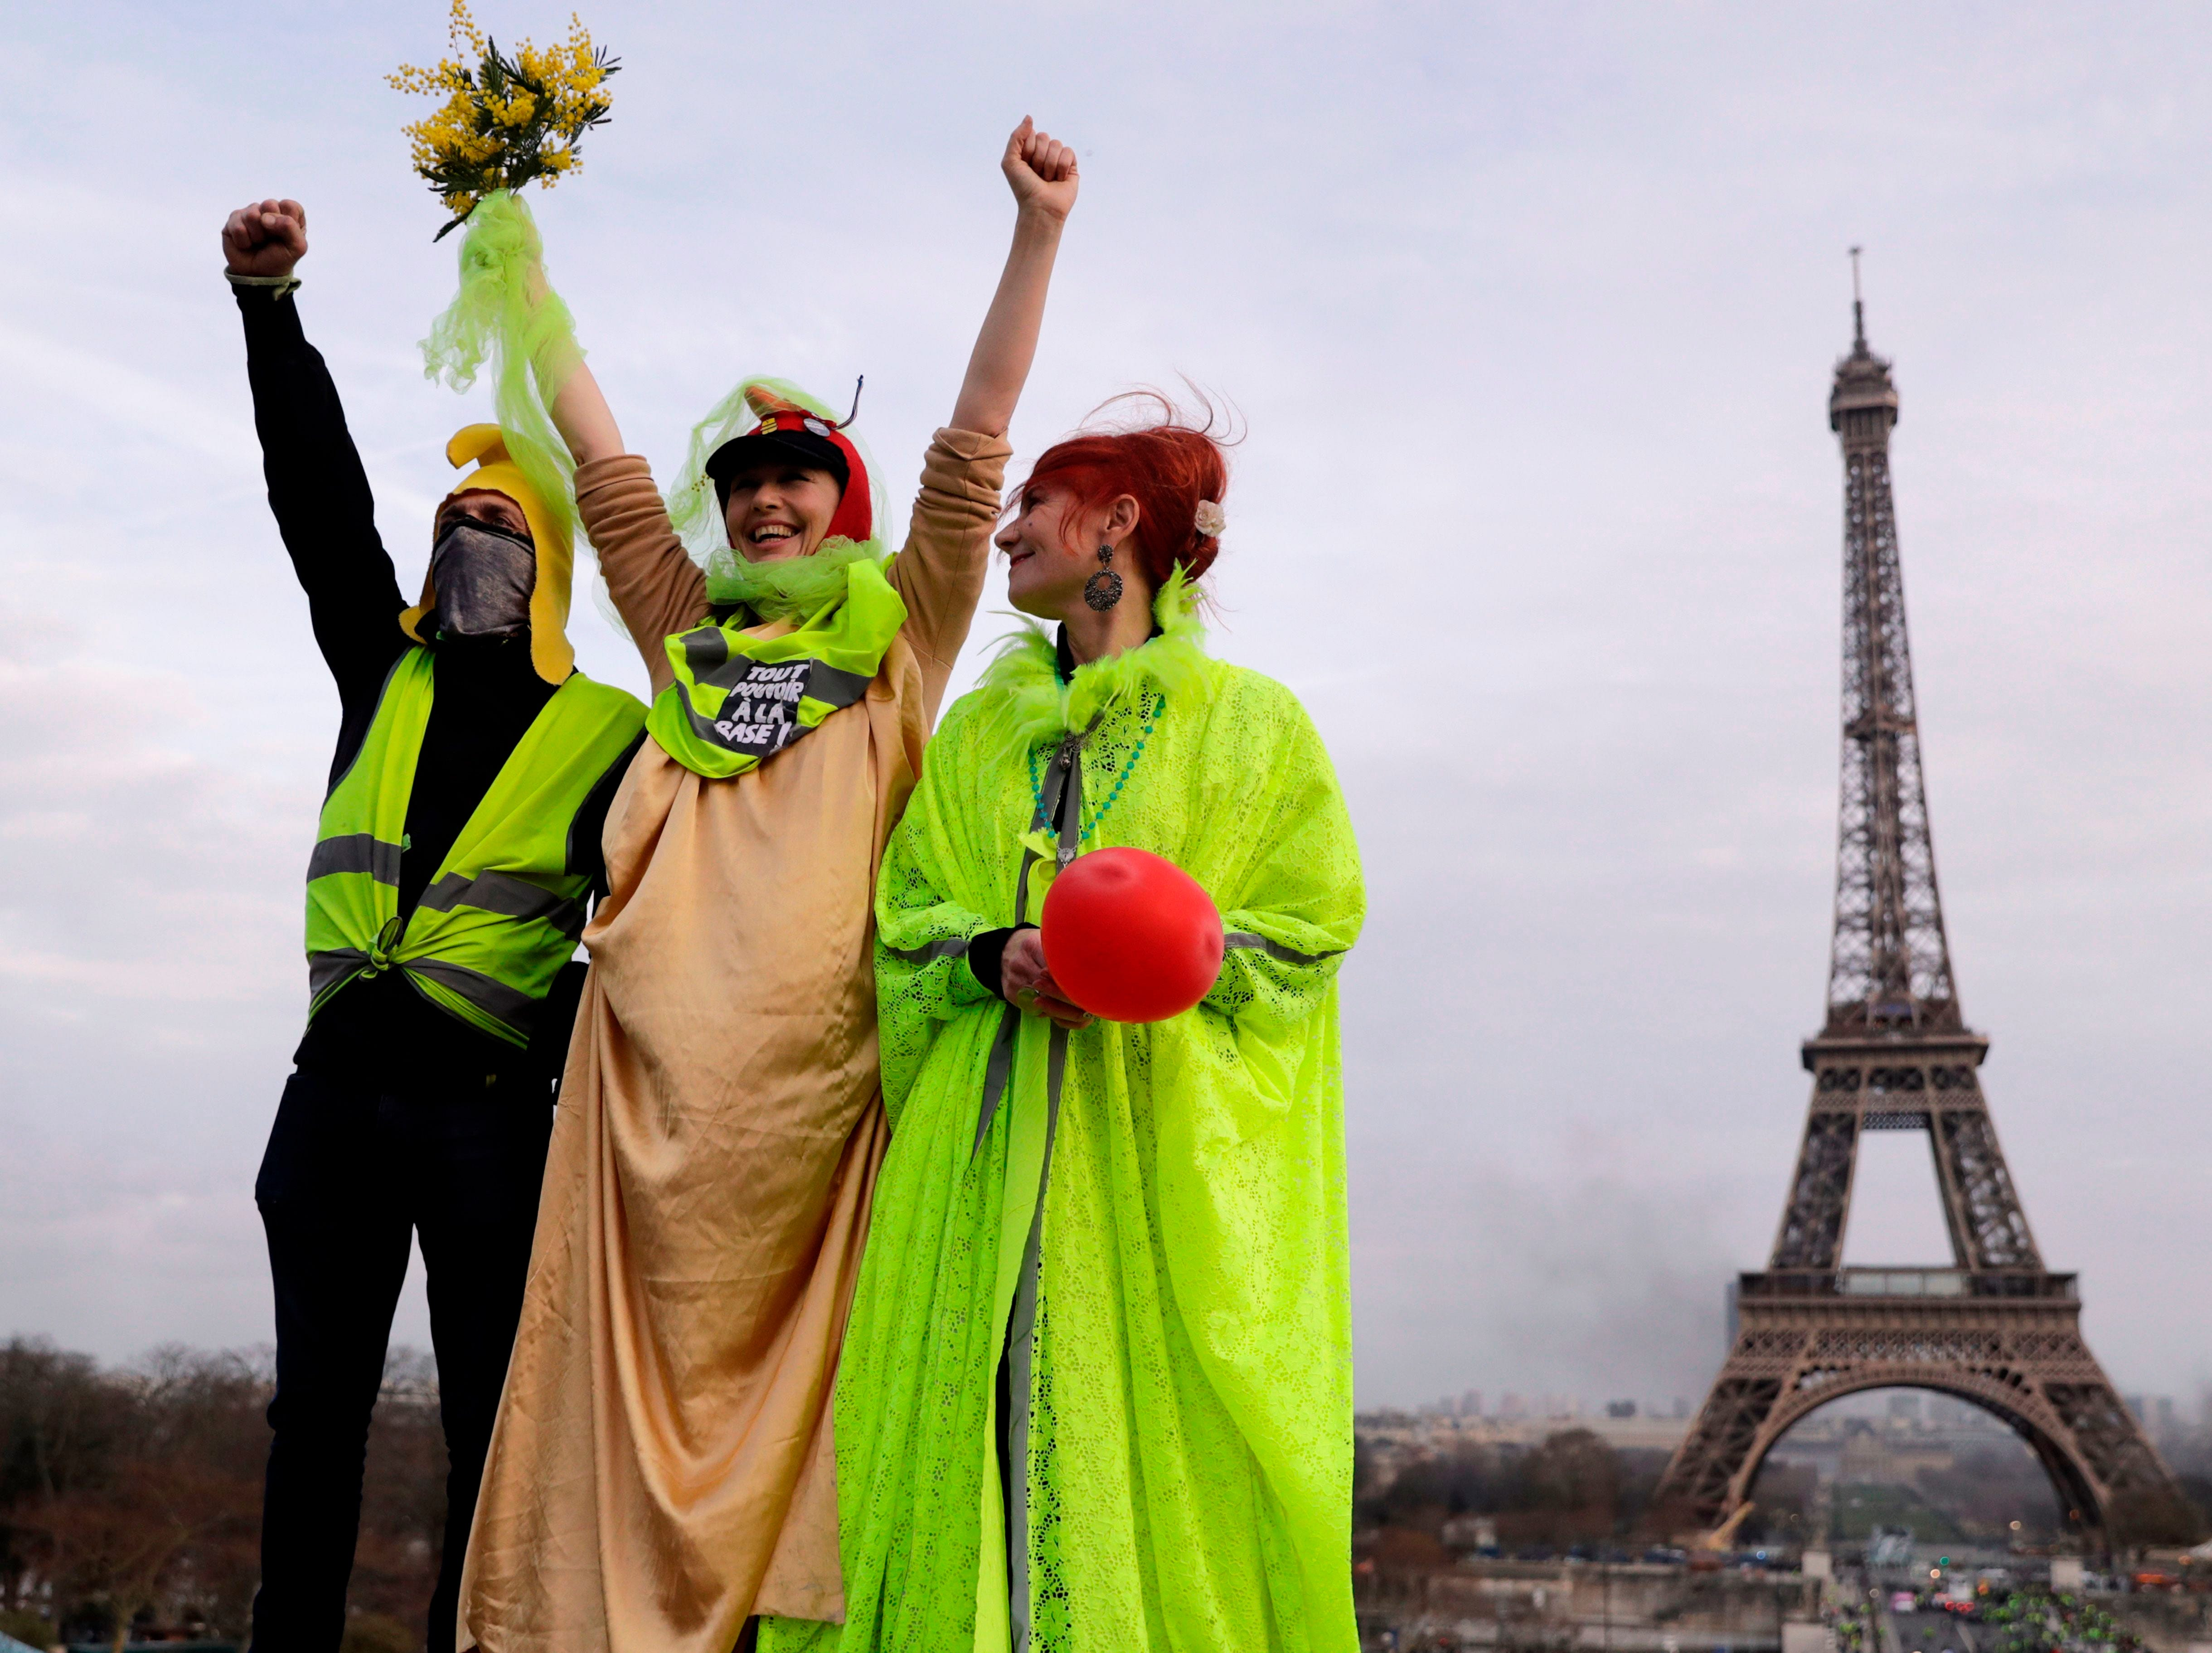 Yellow Vest protesters stand in front of the Eiffel Tower on Feb. 9, 2019 in Paris, during the 13th consecutive Saturday of demonstrations.